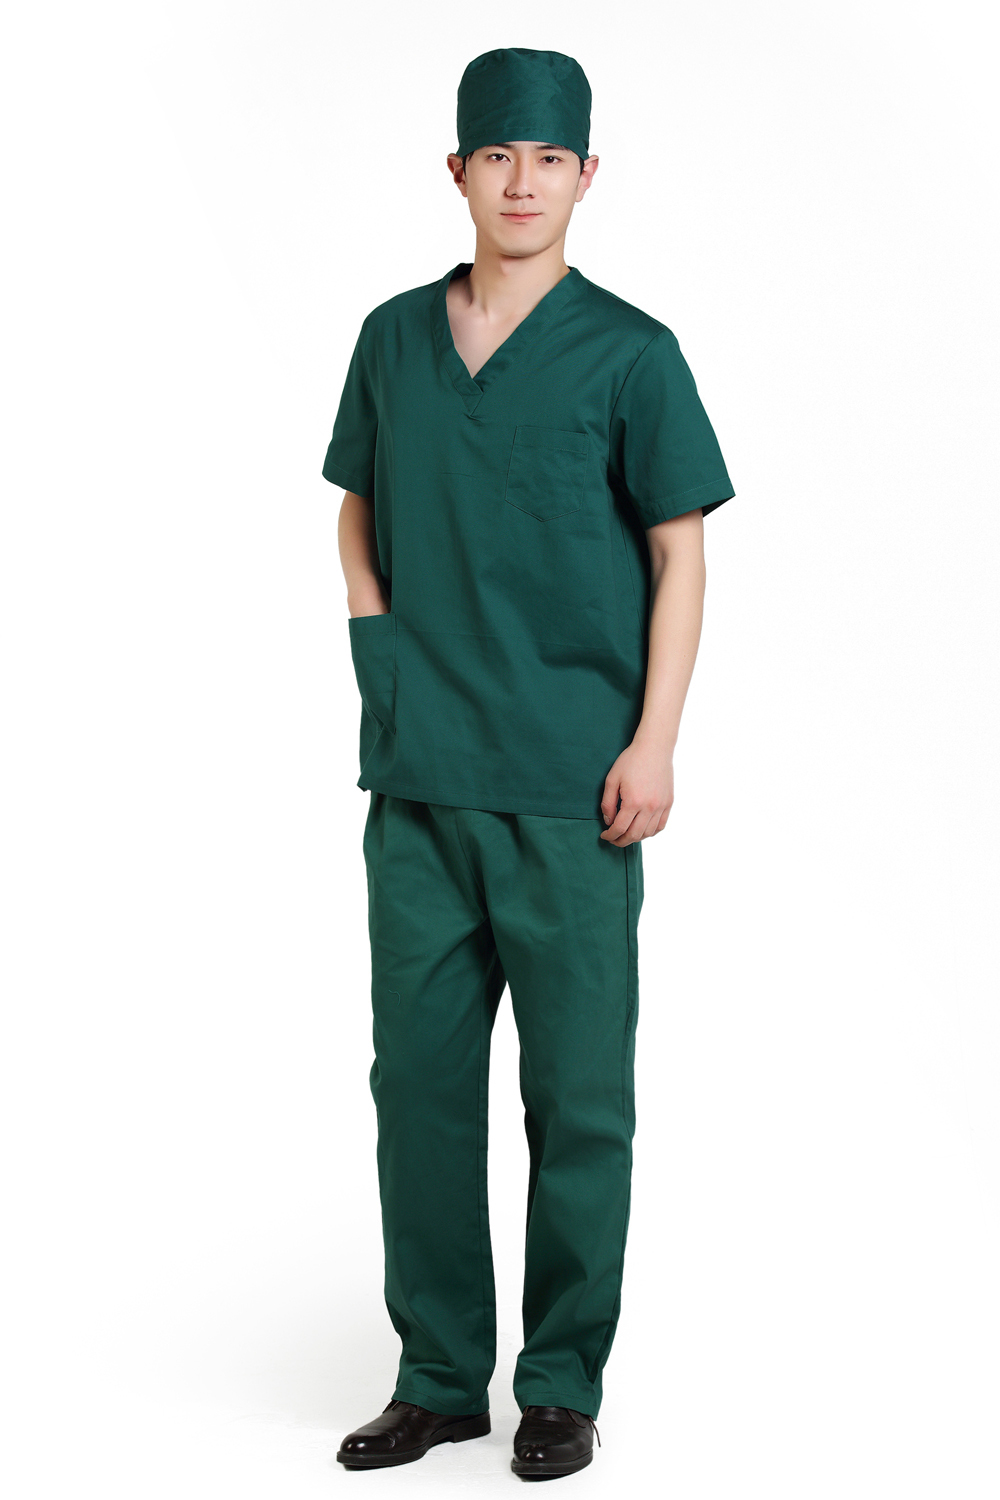 ALL DAY COMFORT: These medical scrubs for women feel soft on the skin, are comfortably roomy, and are designed with a draw string and elastic band for a great fit at the hips.